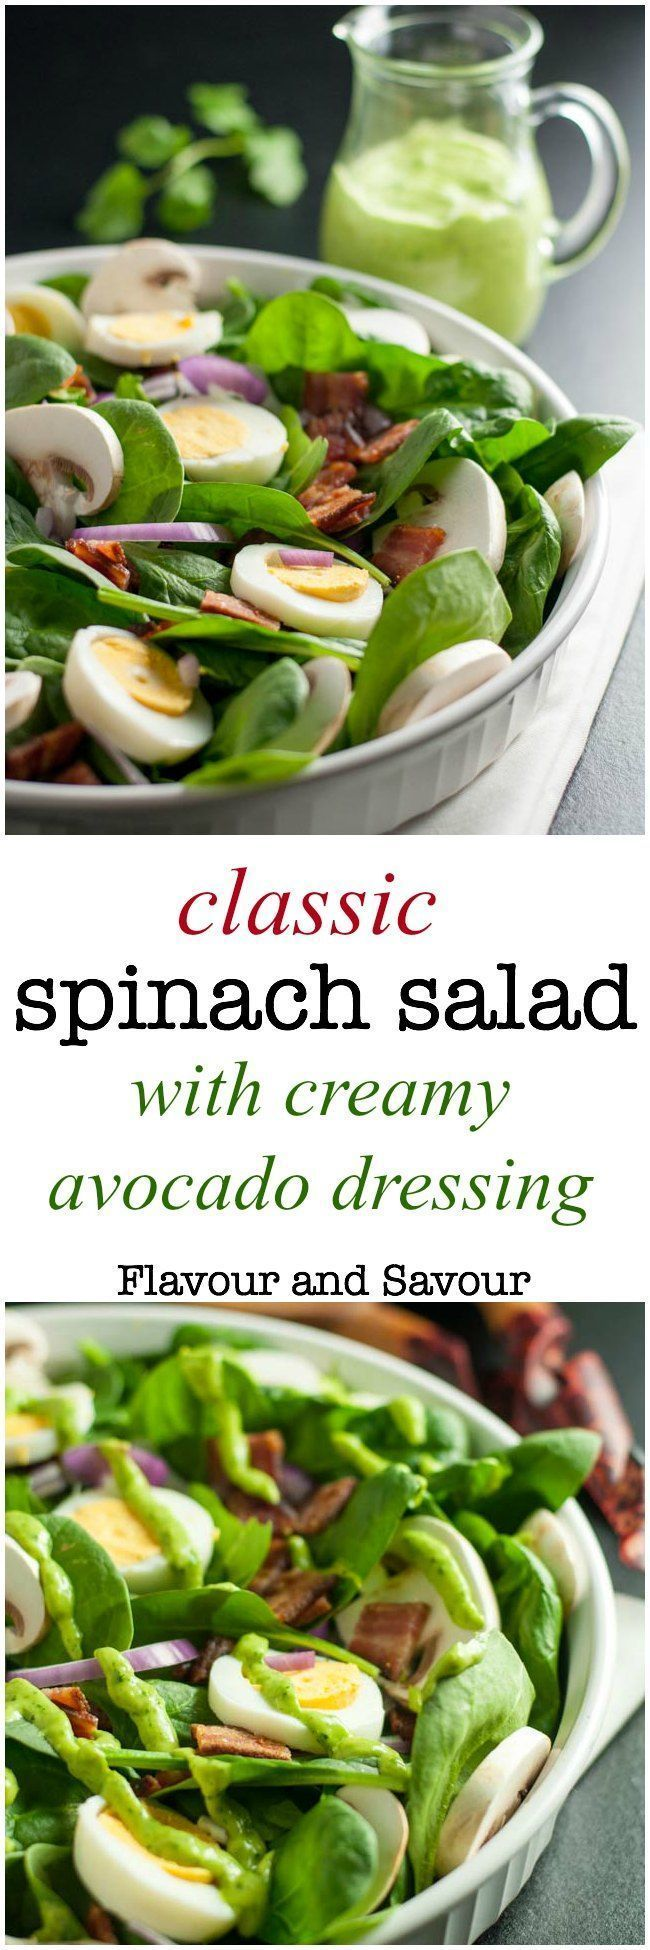 Love spinach salad but hate the high-fat buttermilk dressing? Try this updated paleo spinach salad with creamy dairy-free avocado dressing. So good! #dairy-free #avocado #spinach